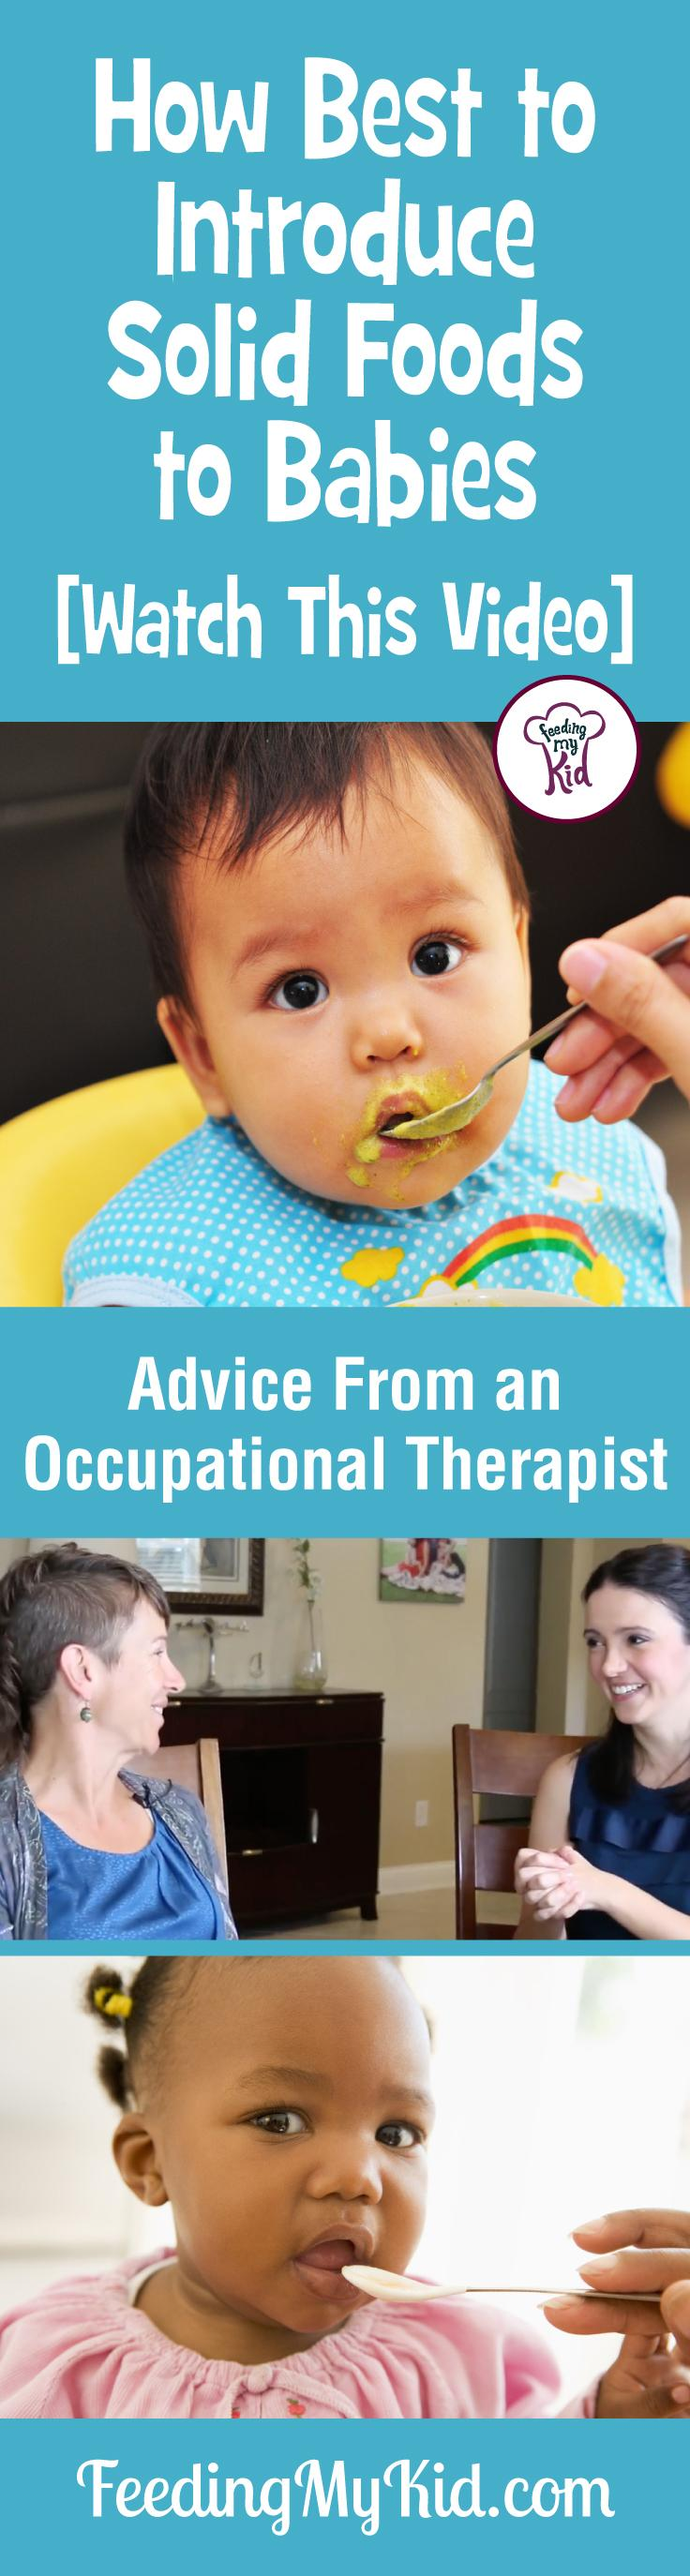 Find out when to introduce solids to your baby. Advice from an occupational therapist. Feeding My Kid is a filled with all the information you need about how to raise your kids, from healthy tips to nutritious recipes. #FeedingMyKid #OccupationalTherapist #advice #kidshealth #introducesolidstoyourbaby